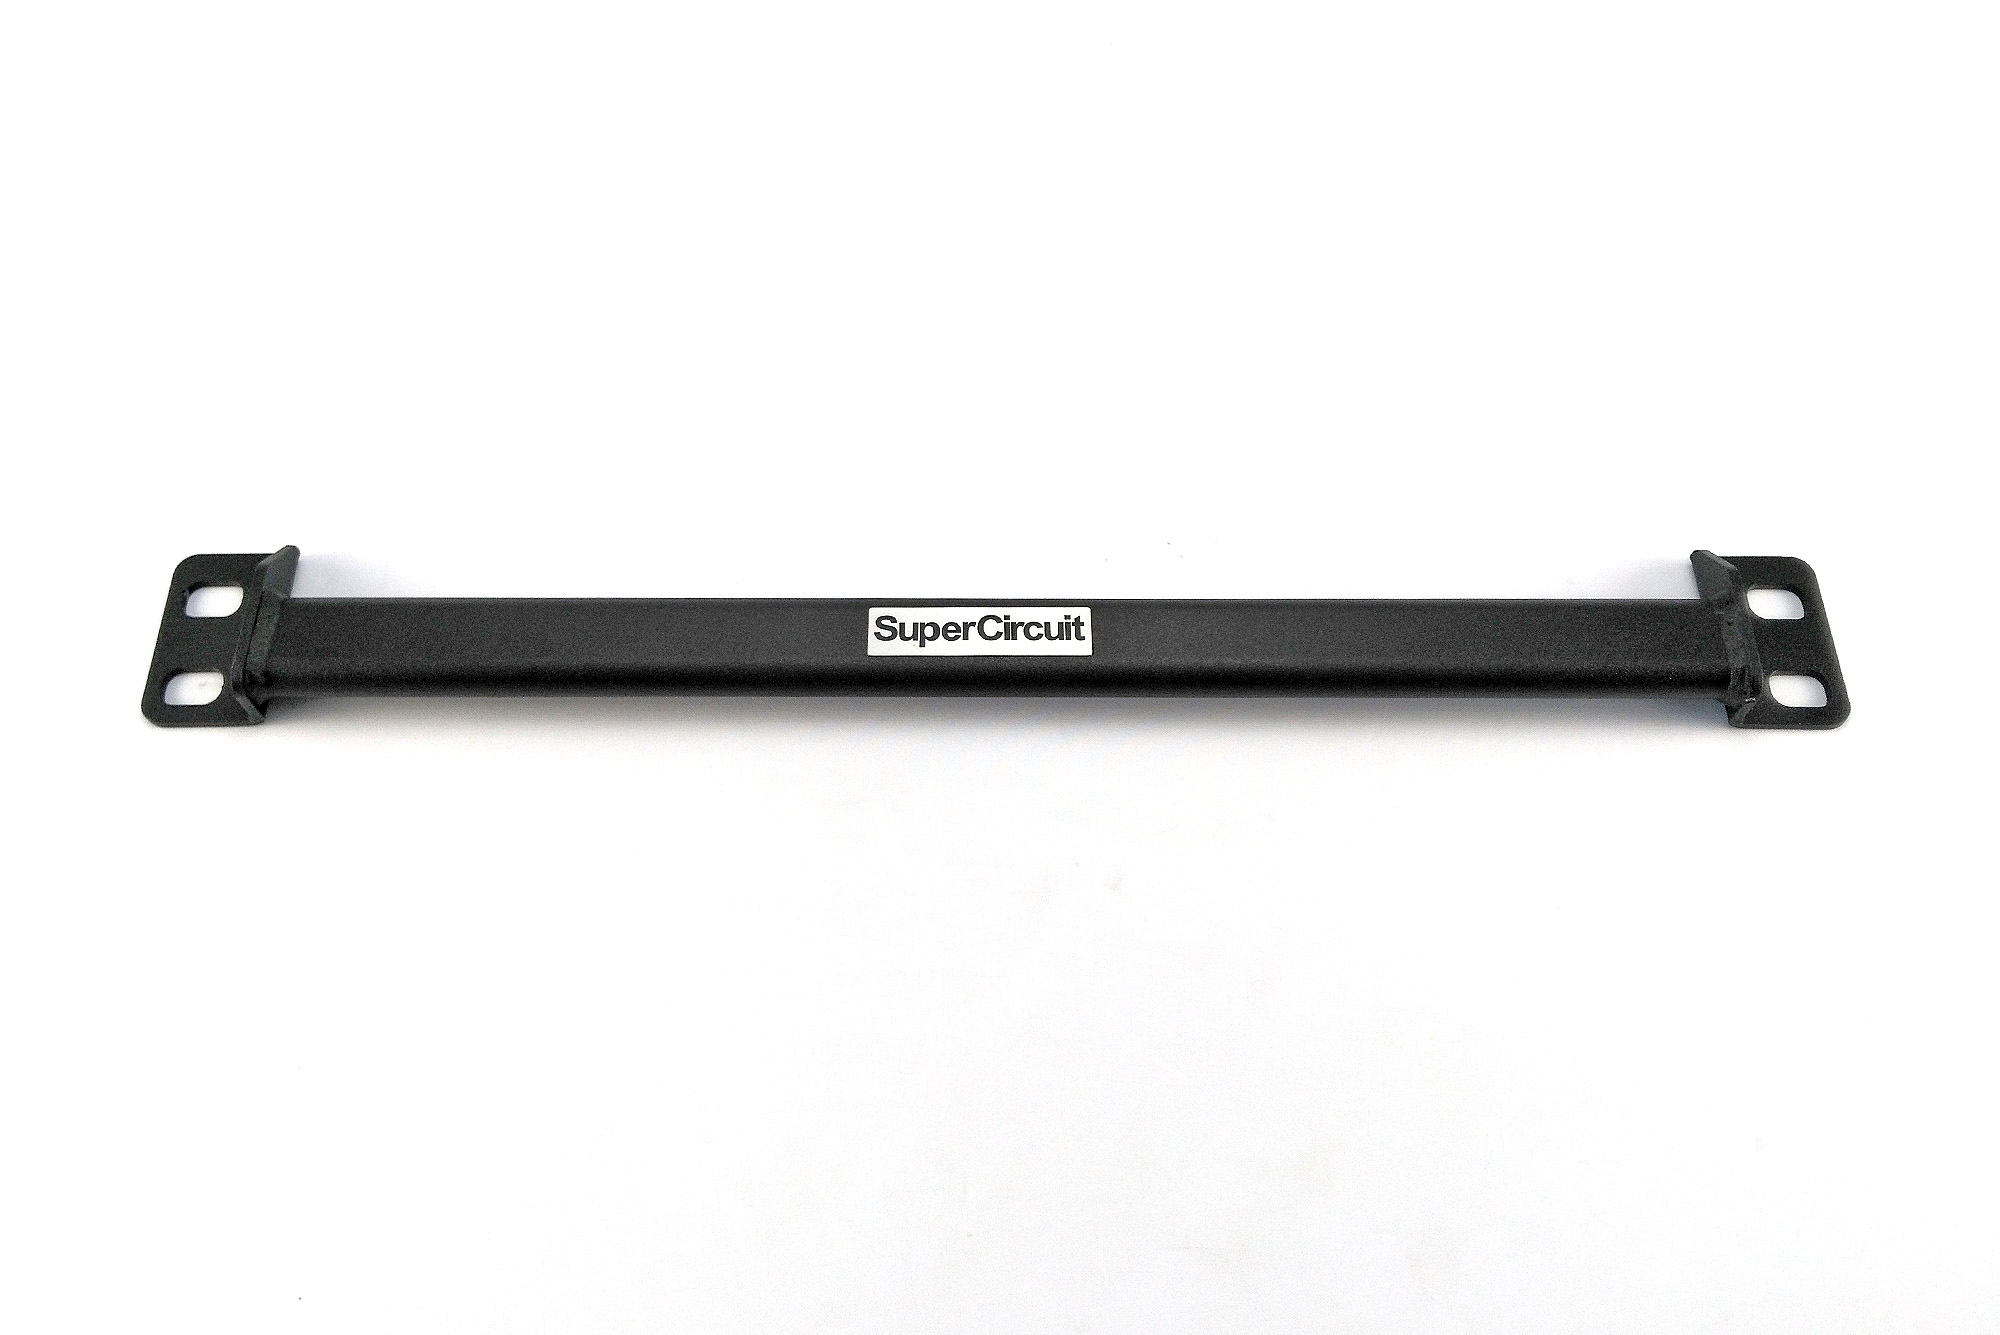 SUPERCIRCUIT Mercedes Benz A-calss W176 Front Lower Bar (MB-FL2-001)